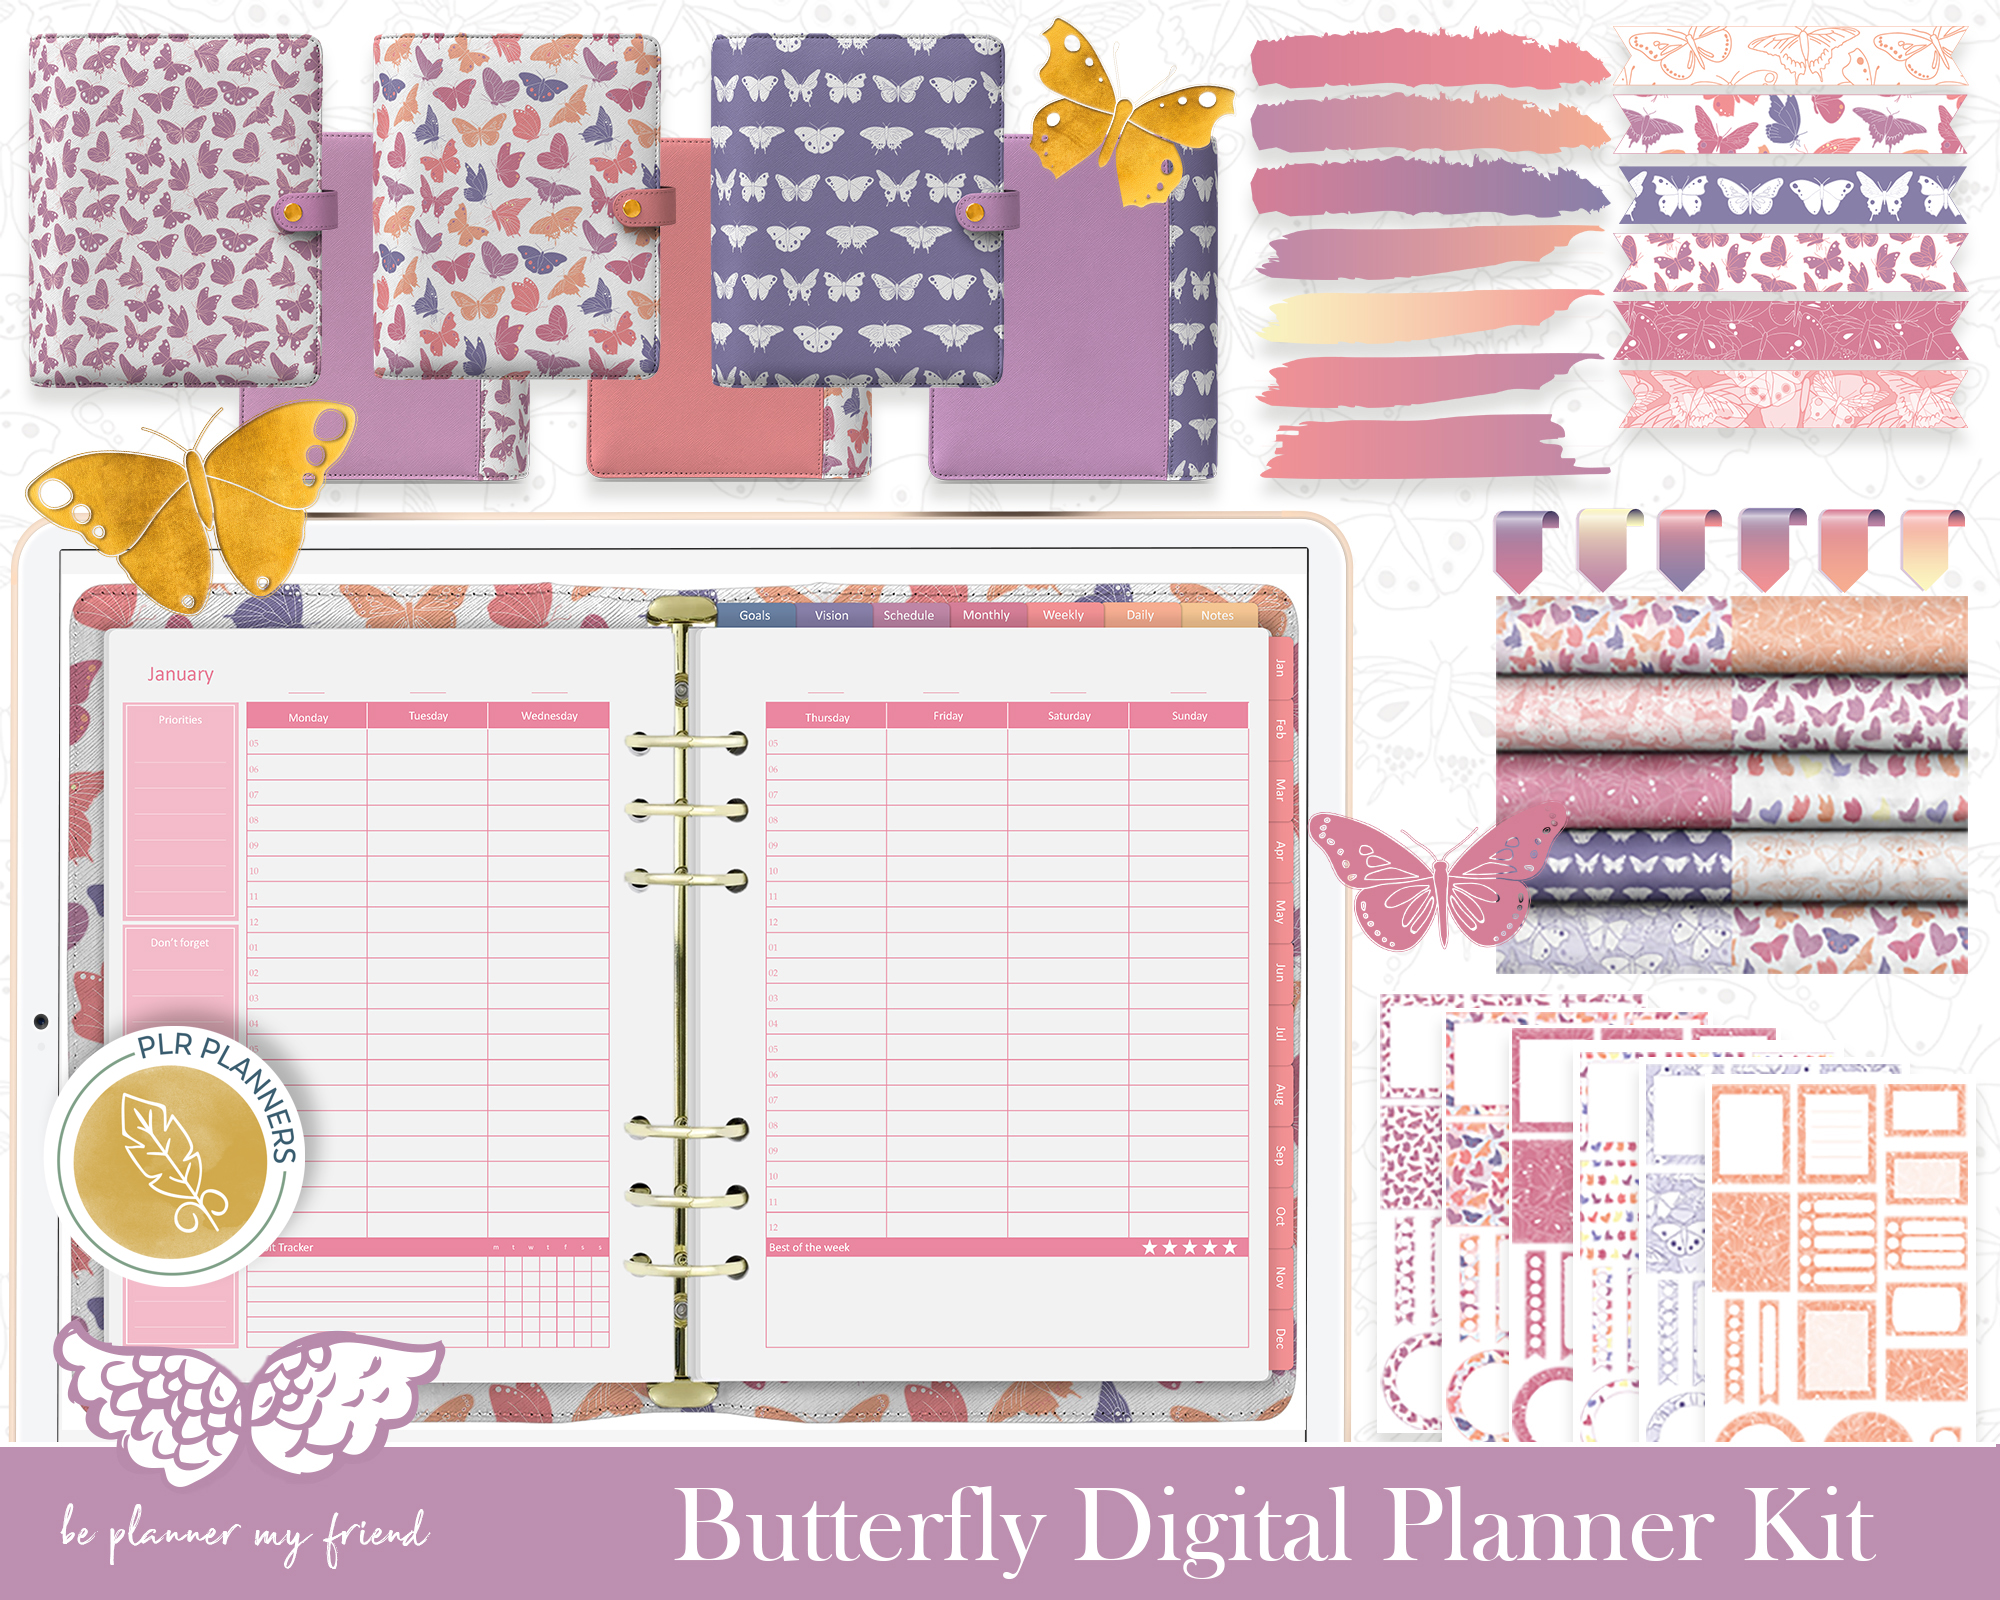 Butterfly Digital Planner Kit with Be Planner My Friend